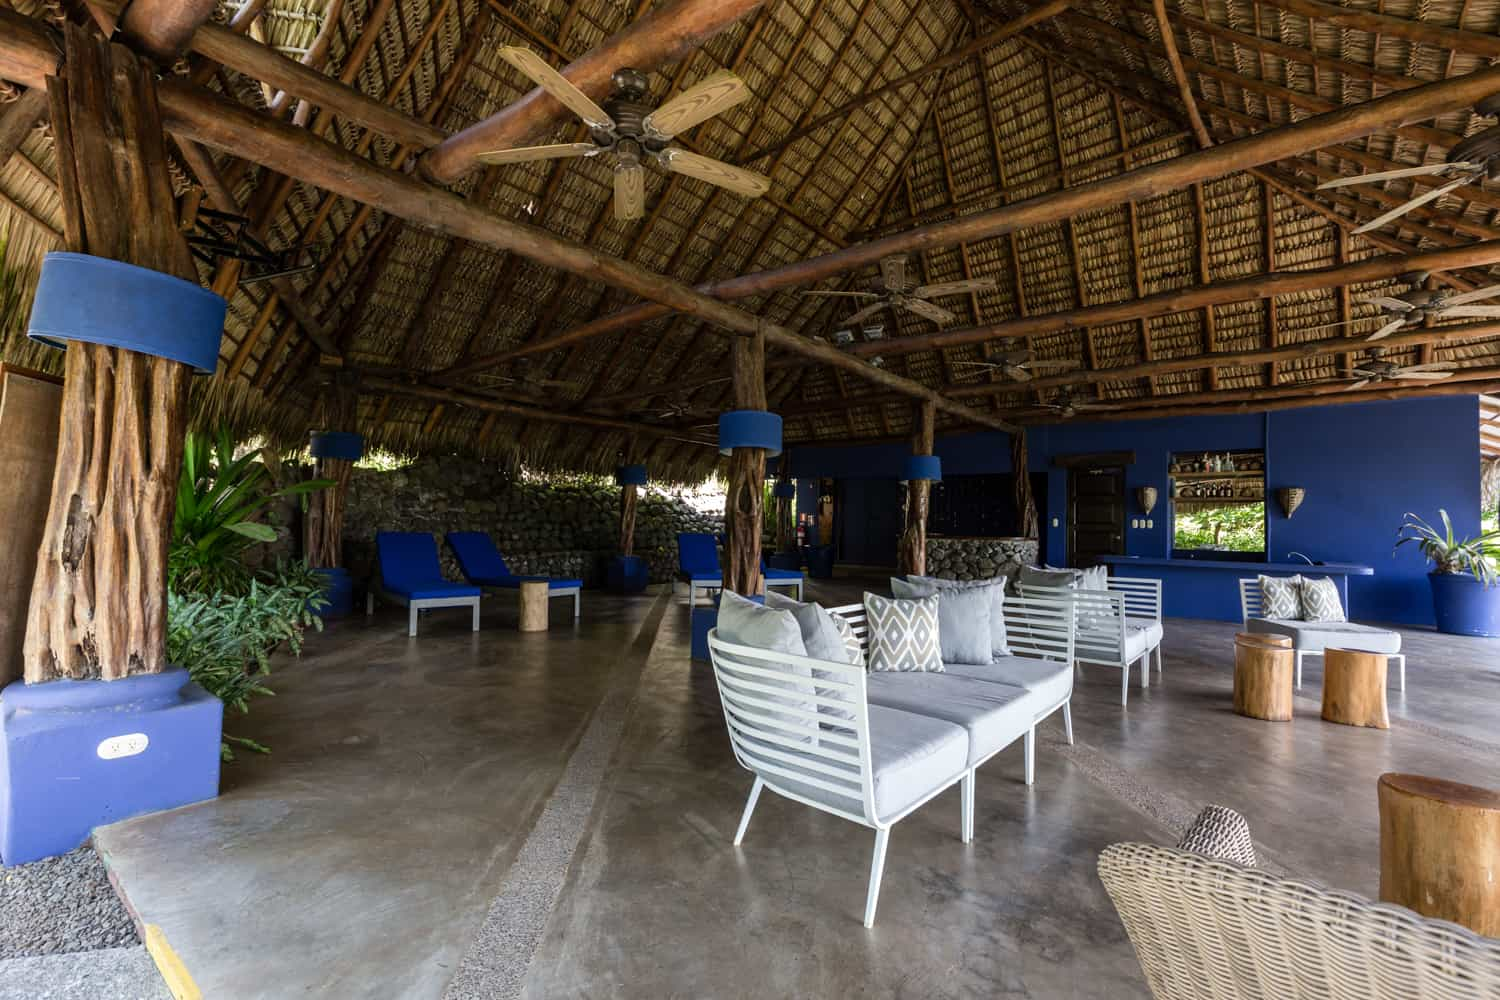 Seating area at Los Cocos Restaurant at Hotel Punta Islita for wedding dinner.